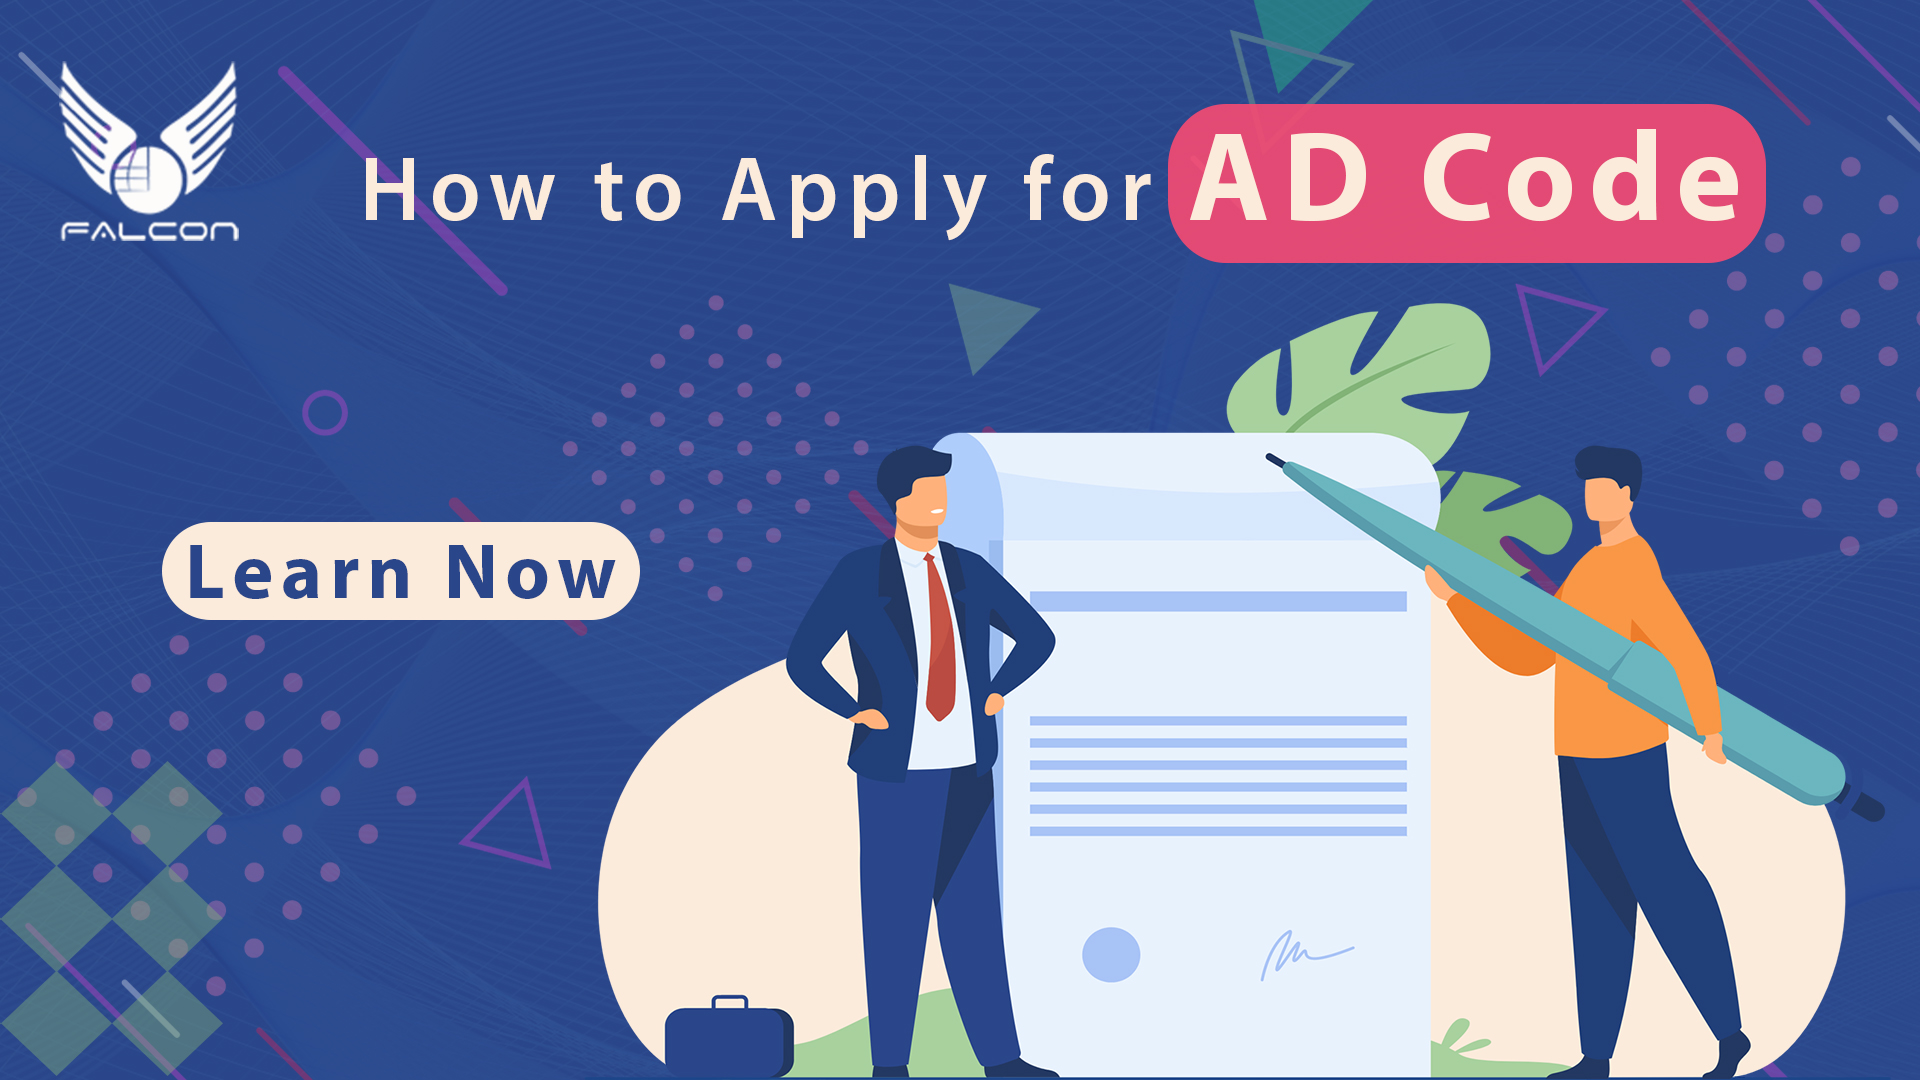 Learn How to Apply for AD Code